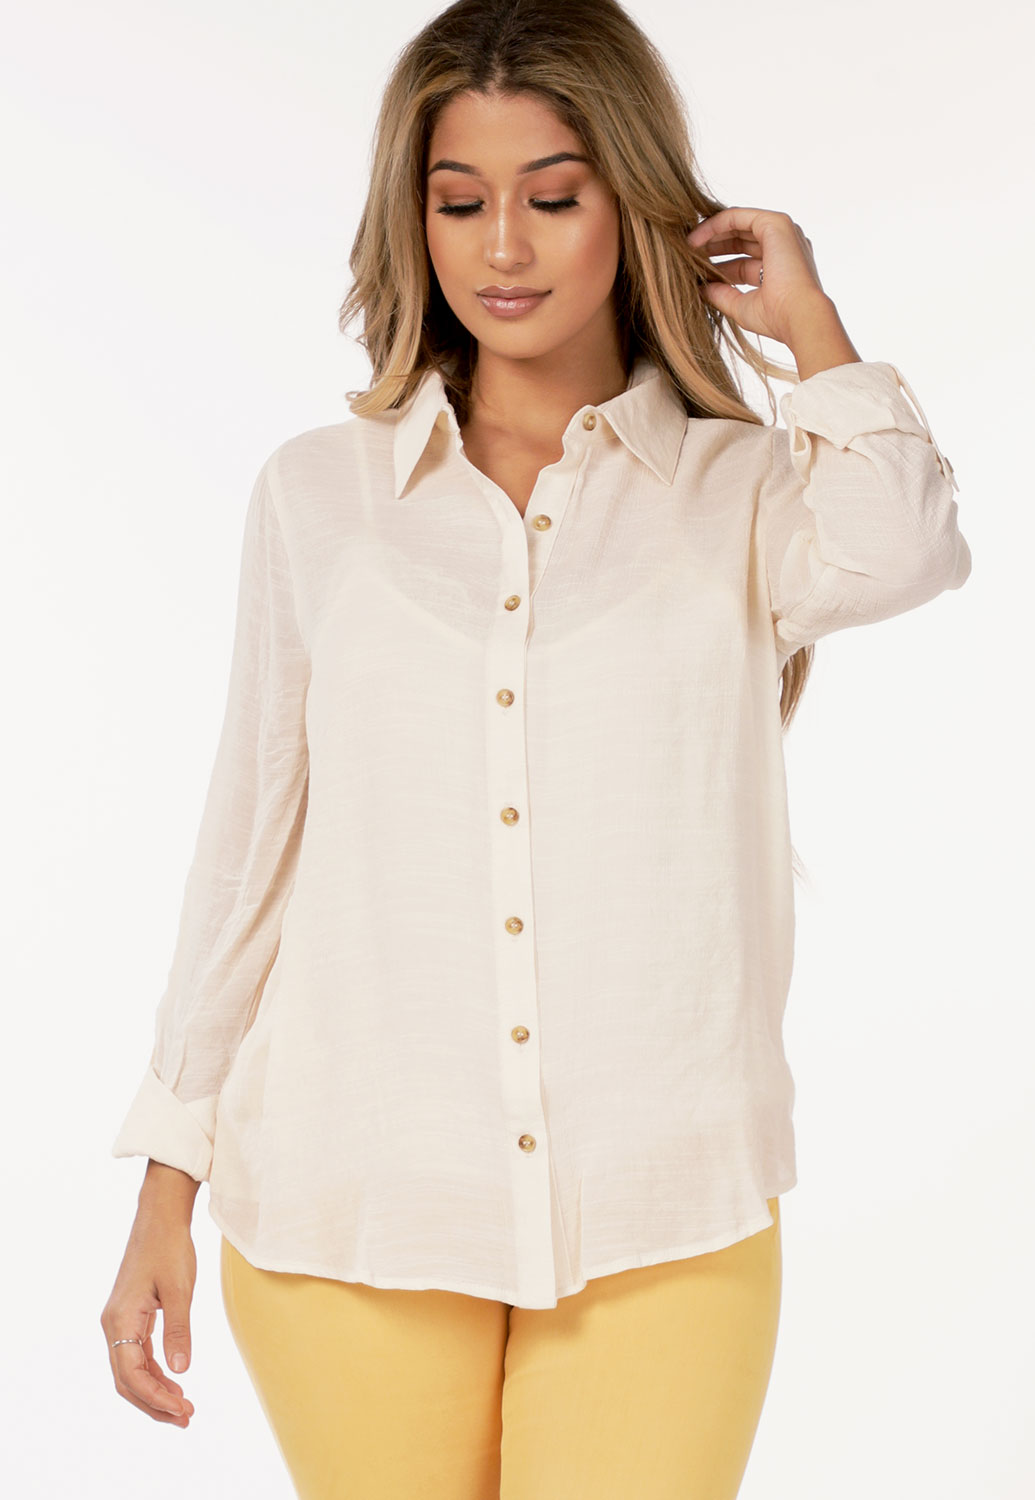 Button Up Dressy Blouse